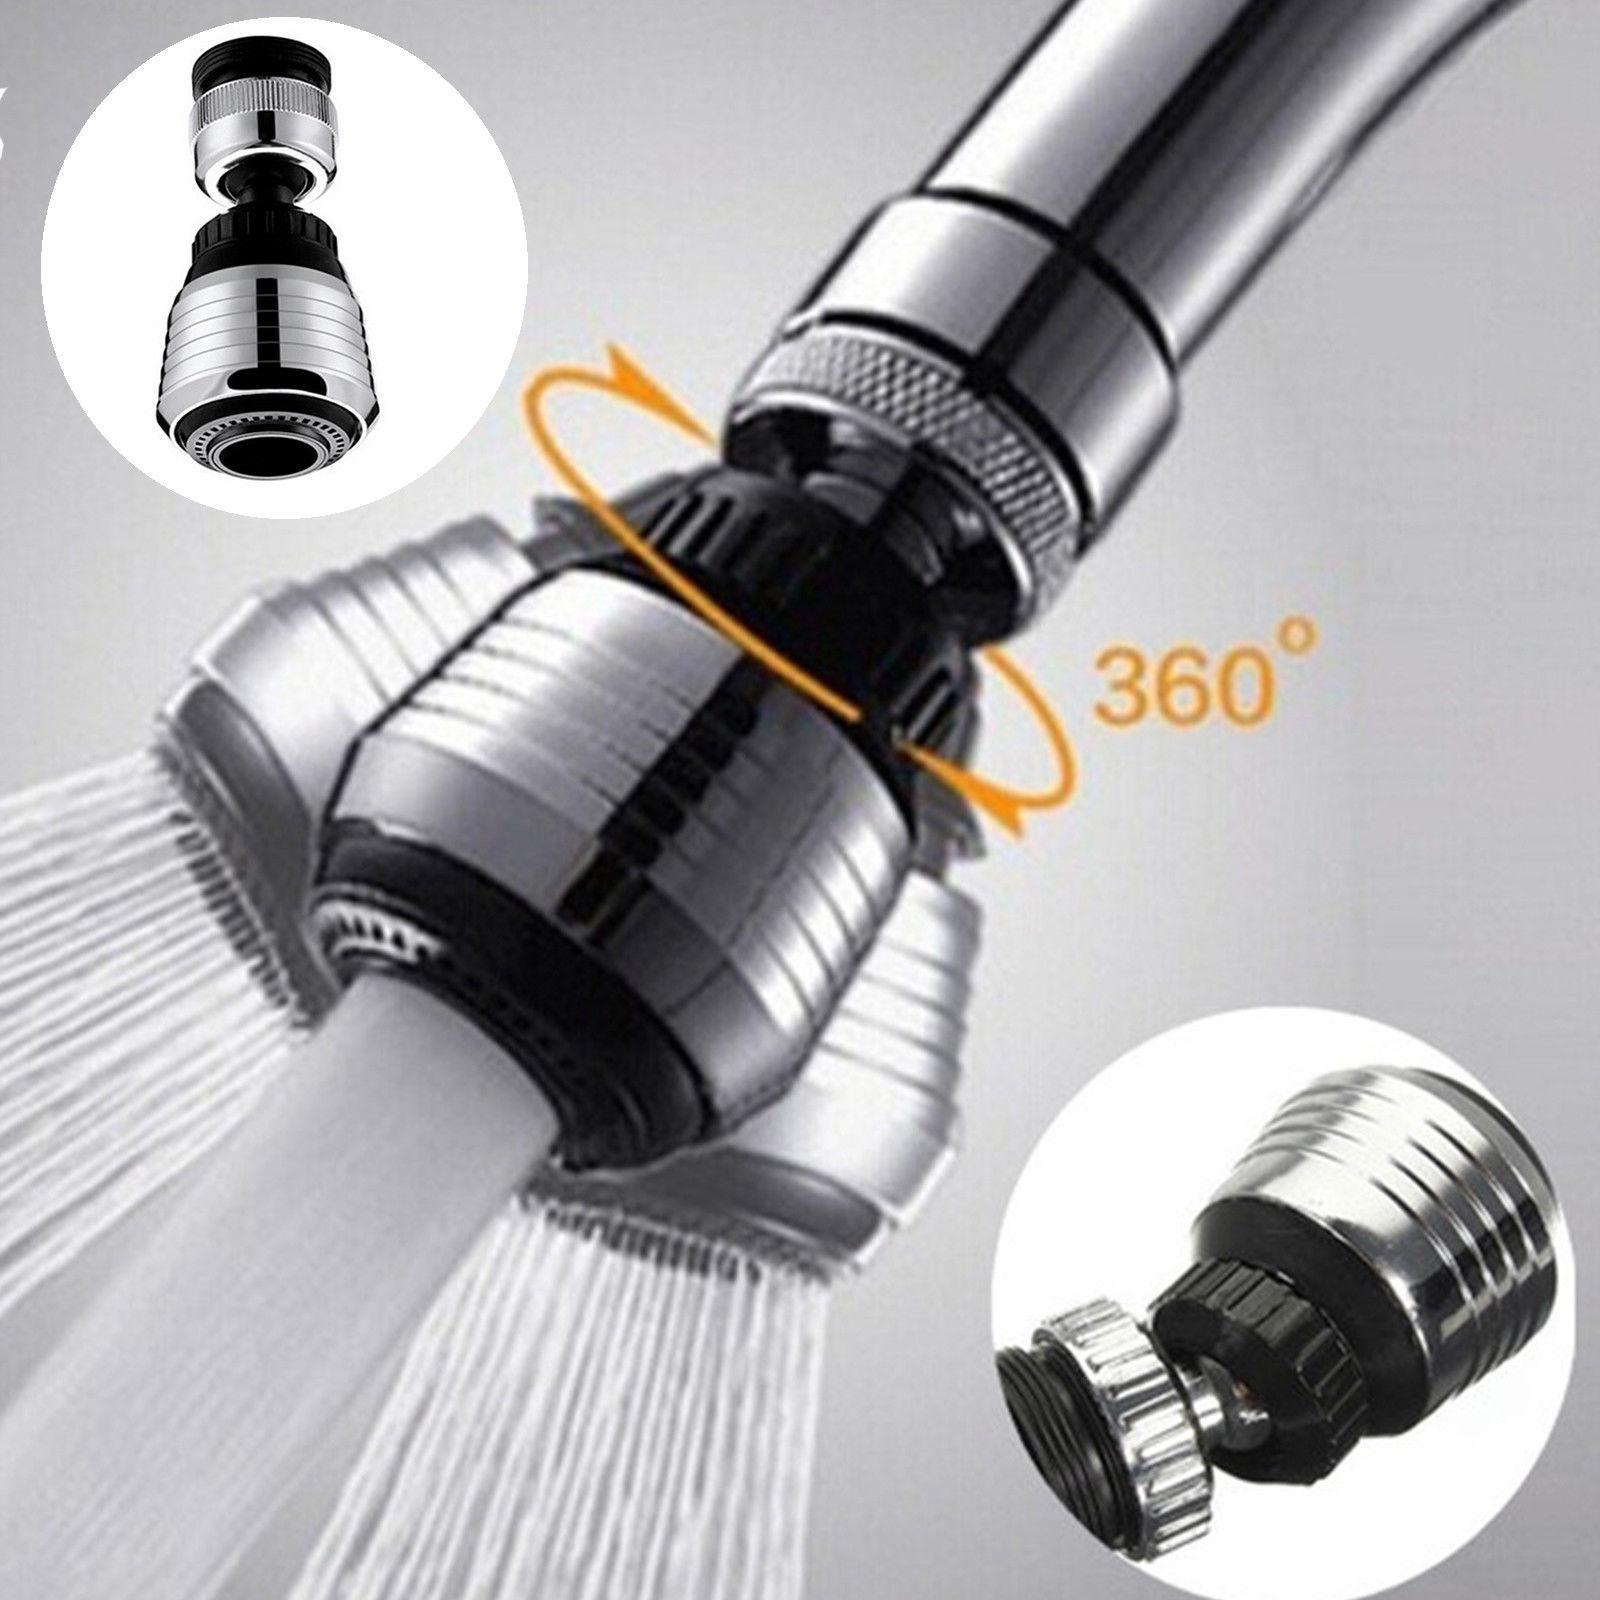 Phenomenal 360 Rotate Swivel Faucet Nozzle Filter Adapter Water Saving Tap Aerator Diffuser Kitchen Faucet Bubbler Aaa736 Download Free Architecture Designs Jebrpmadebymaigaardcom